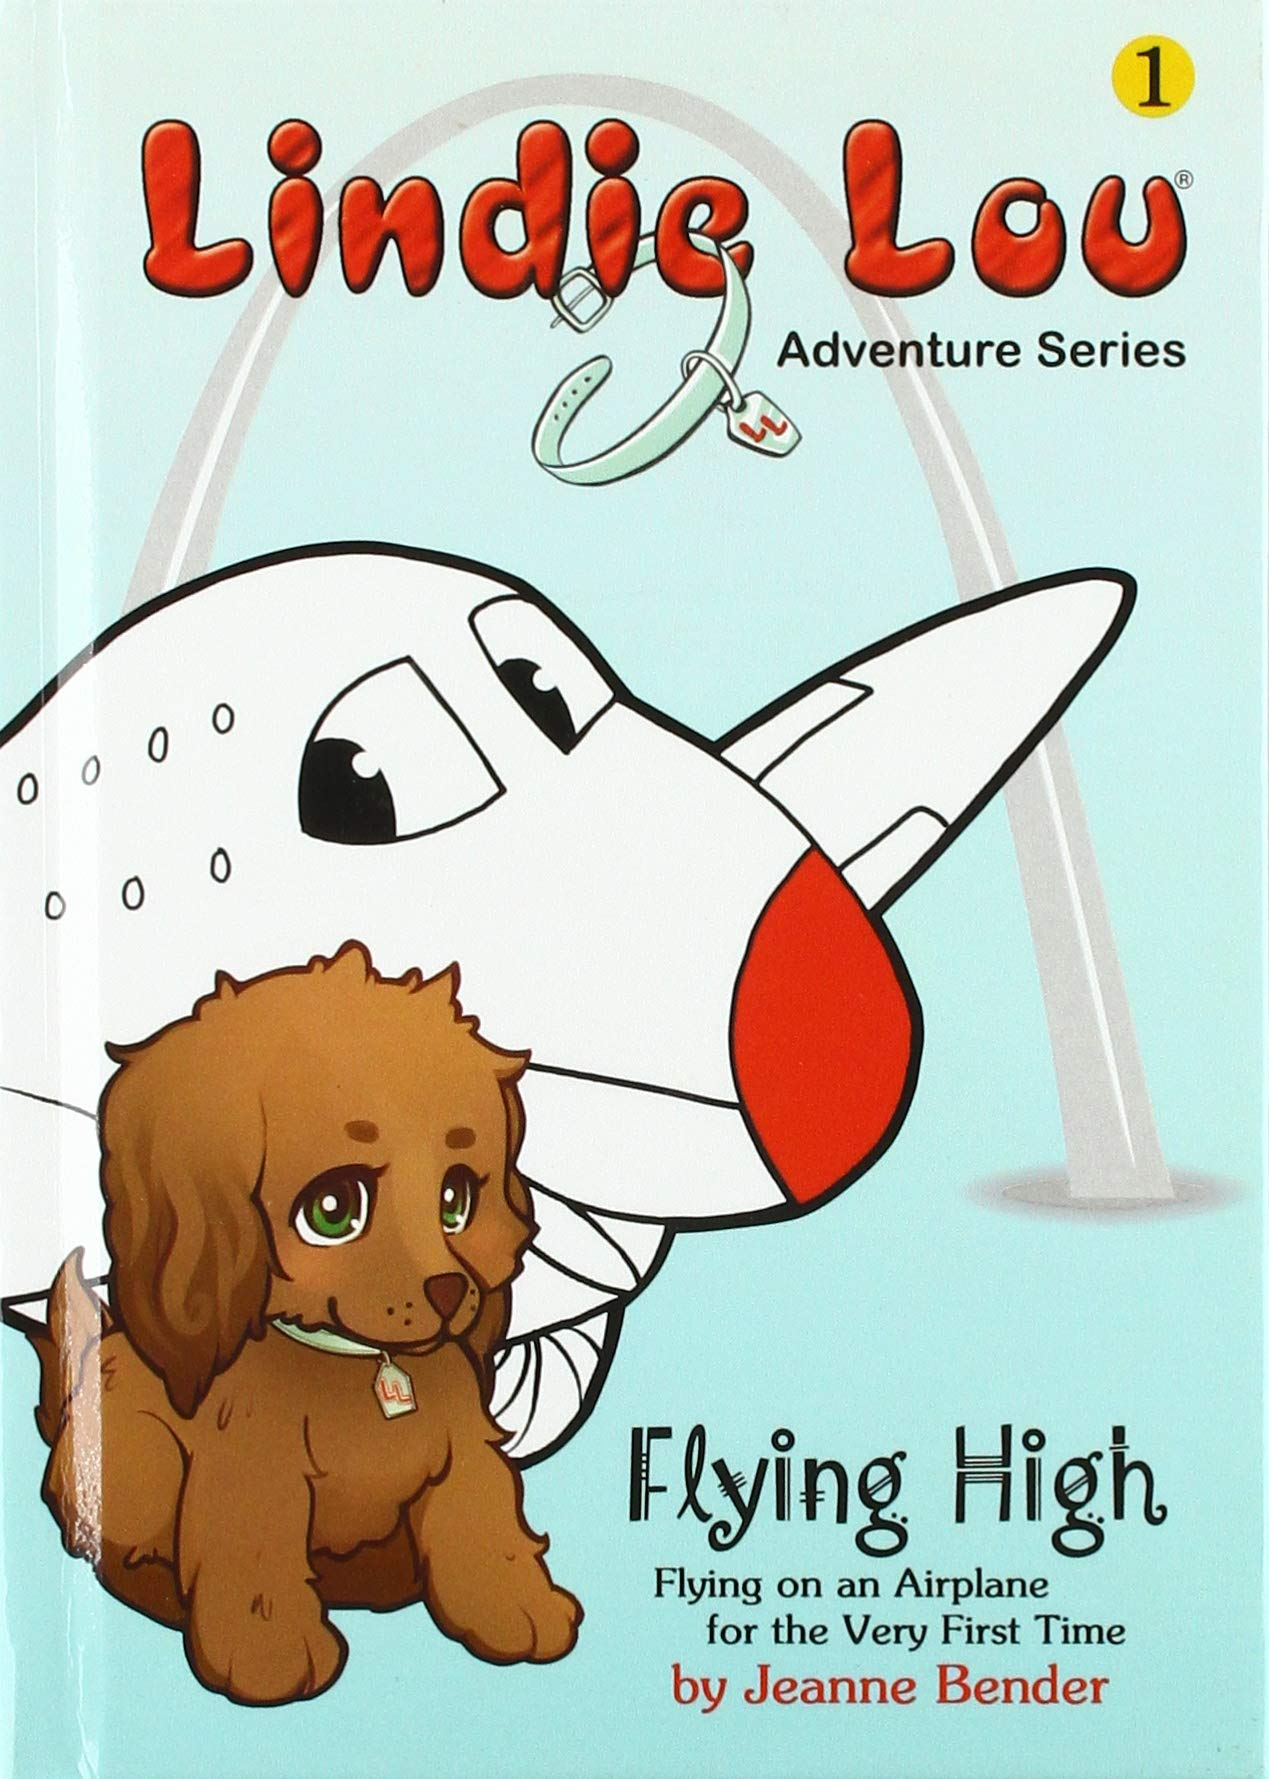 Flying High, Flying on an Airplane for the Very First Time - 2nd Edition (Lindie Lou Adventures) pdf epub